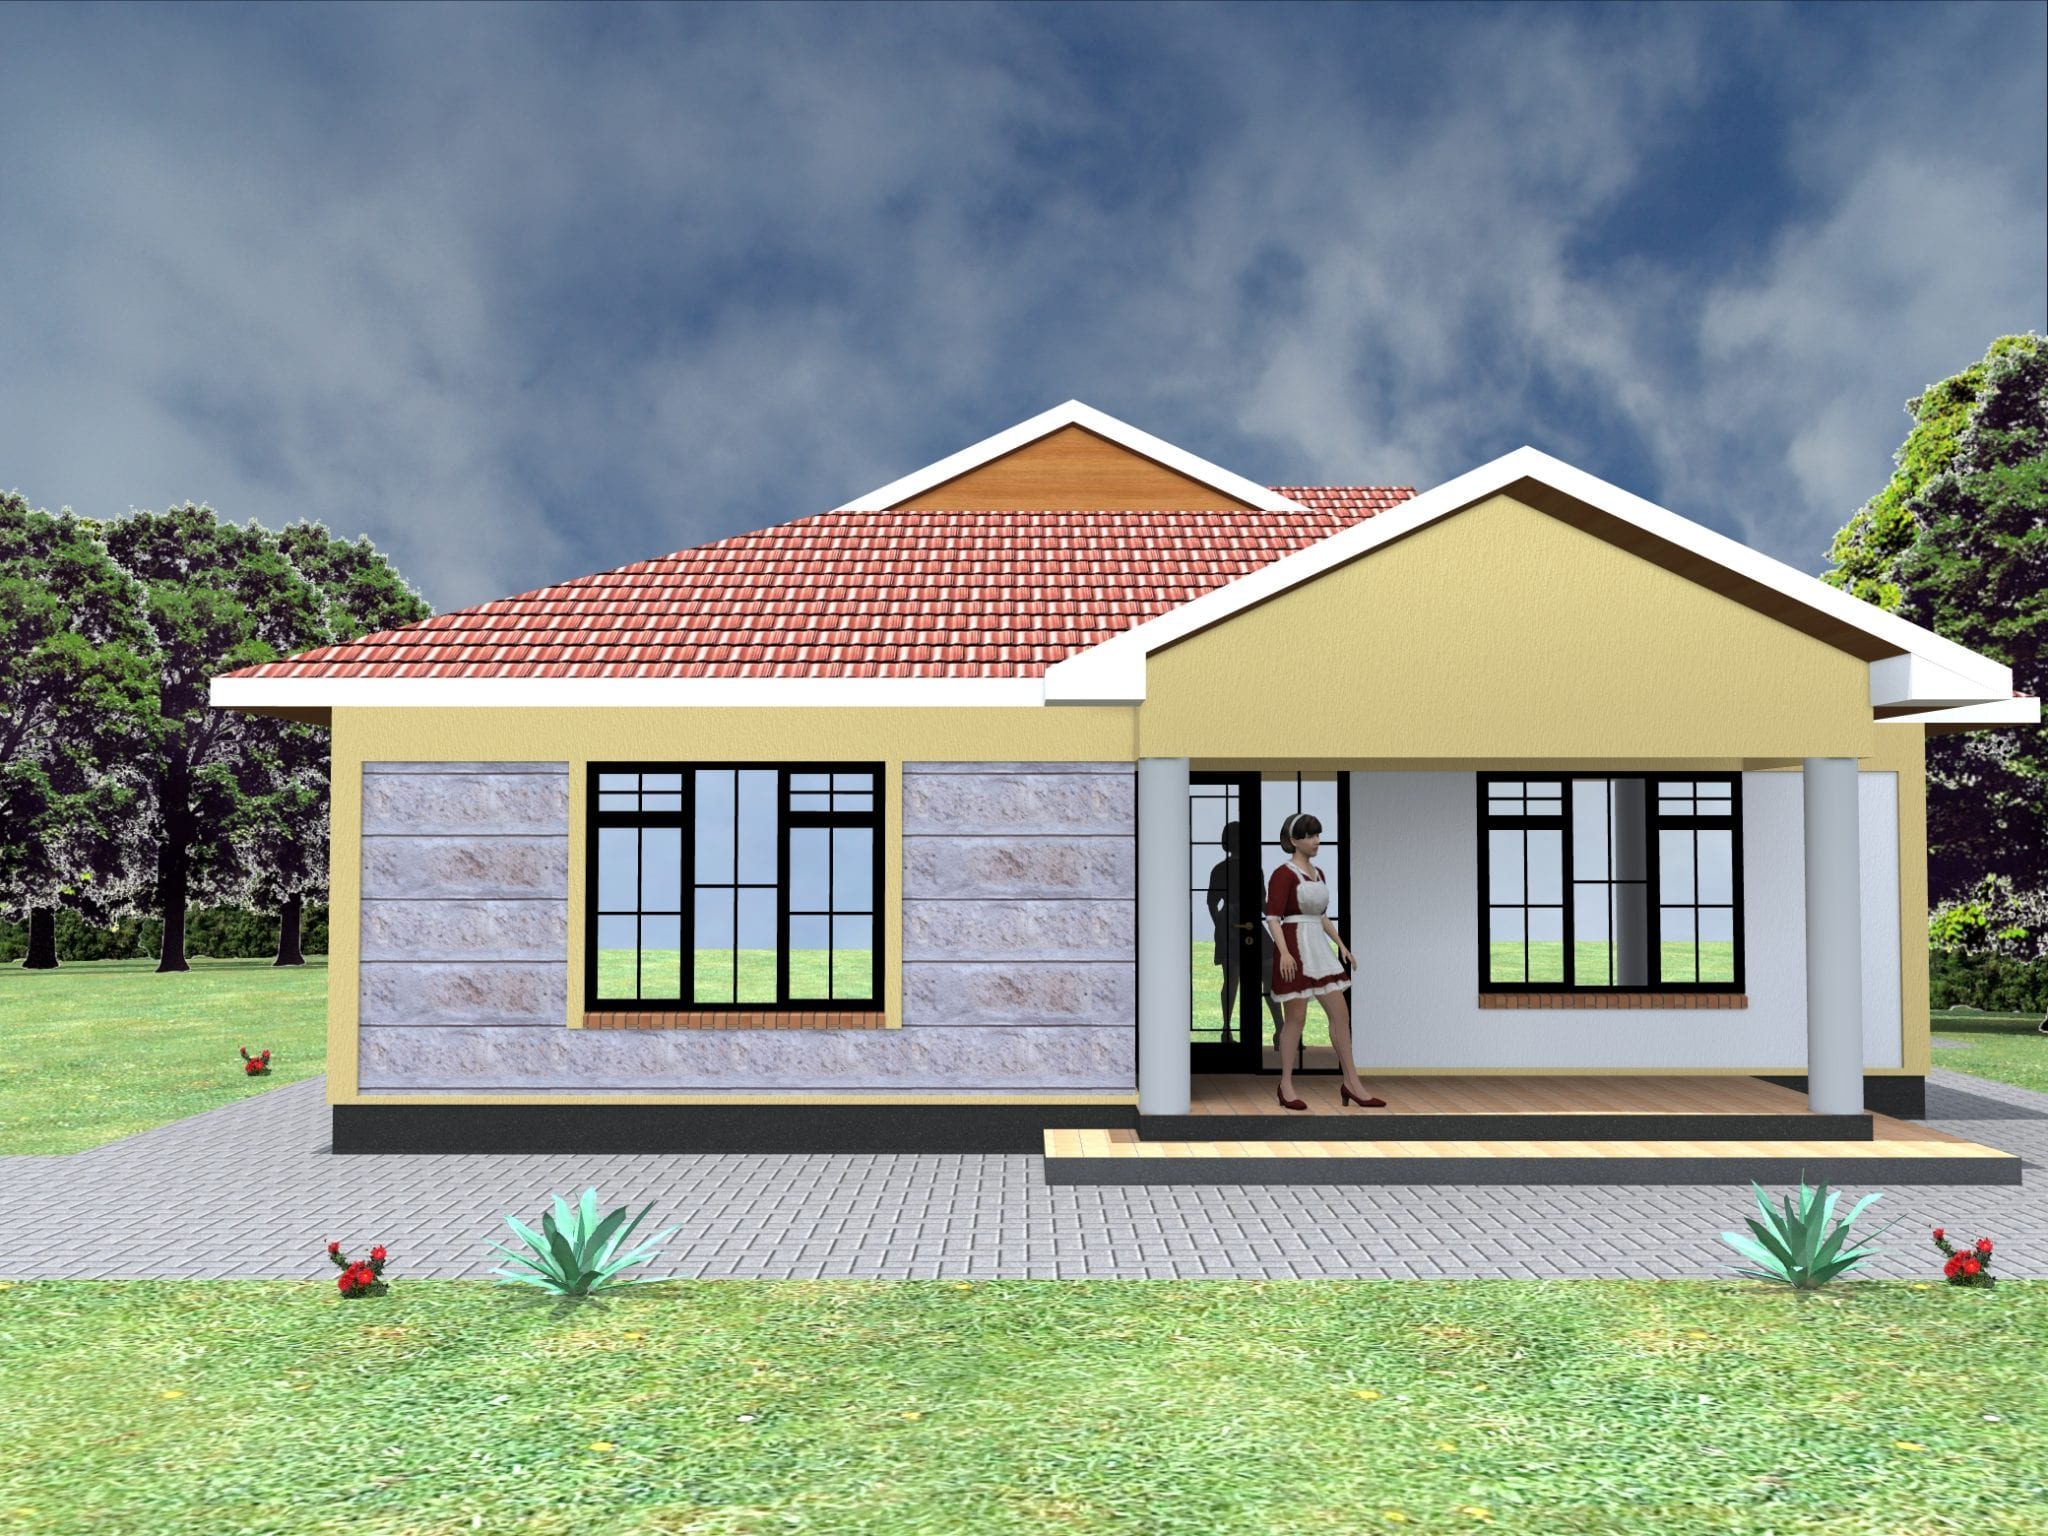 Low Budget Modern 3 Bedroom House Design Hpd Consult in 15 Genius Ideas How to Upgrade 3 Bedroom Modern House Design